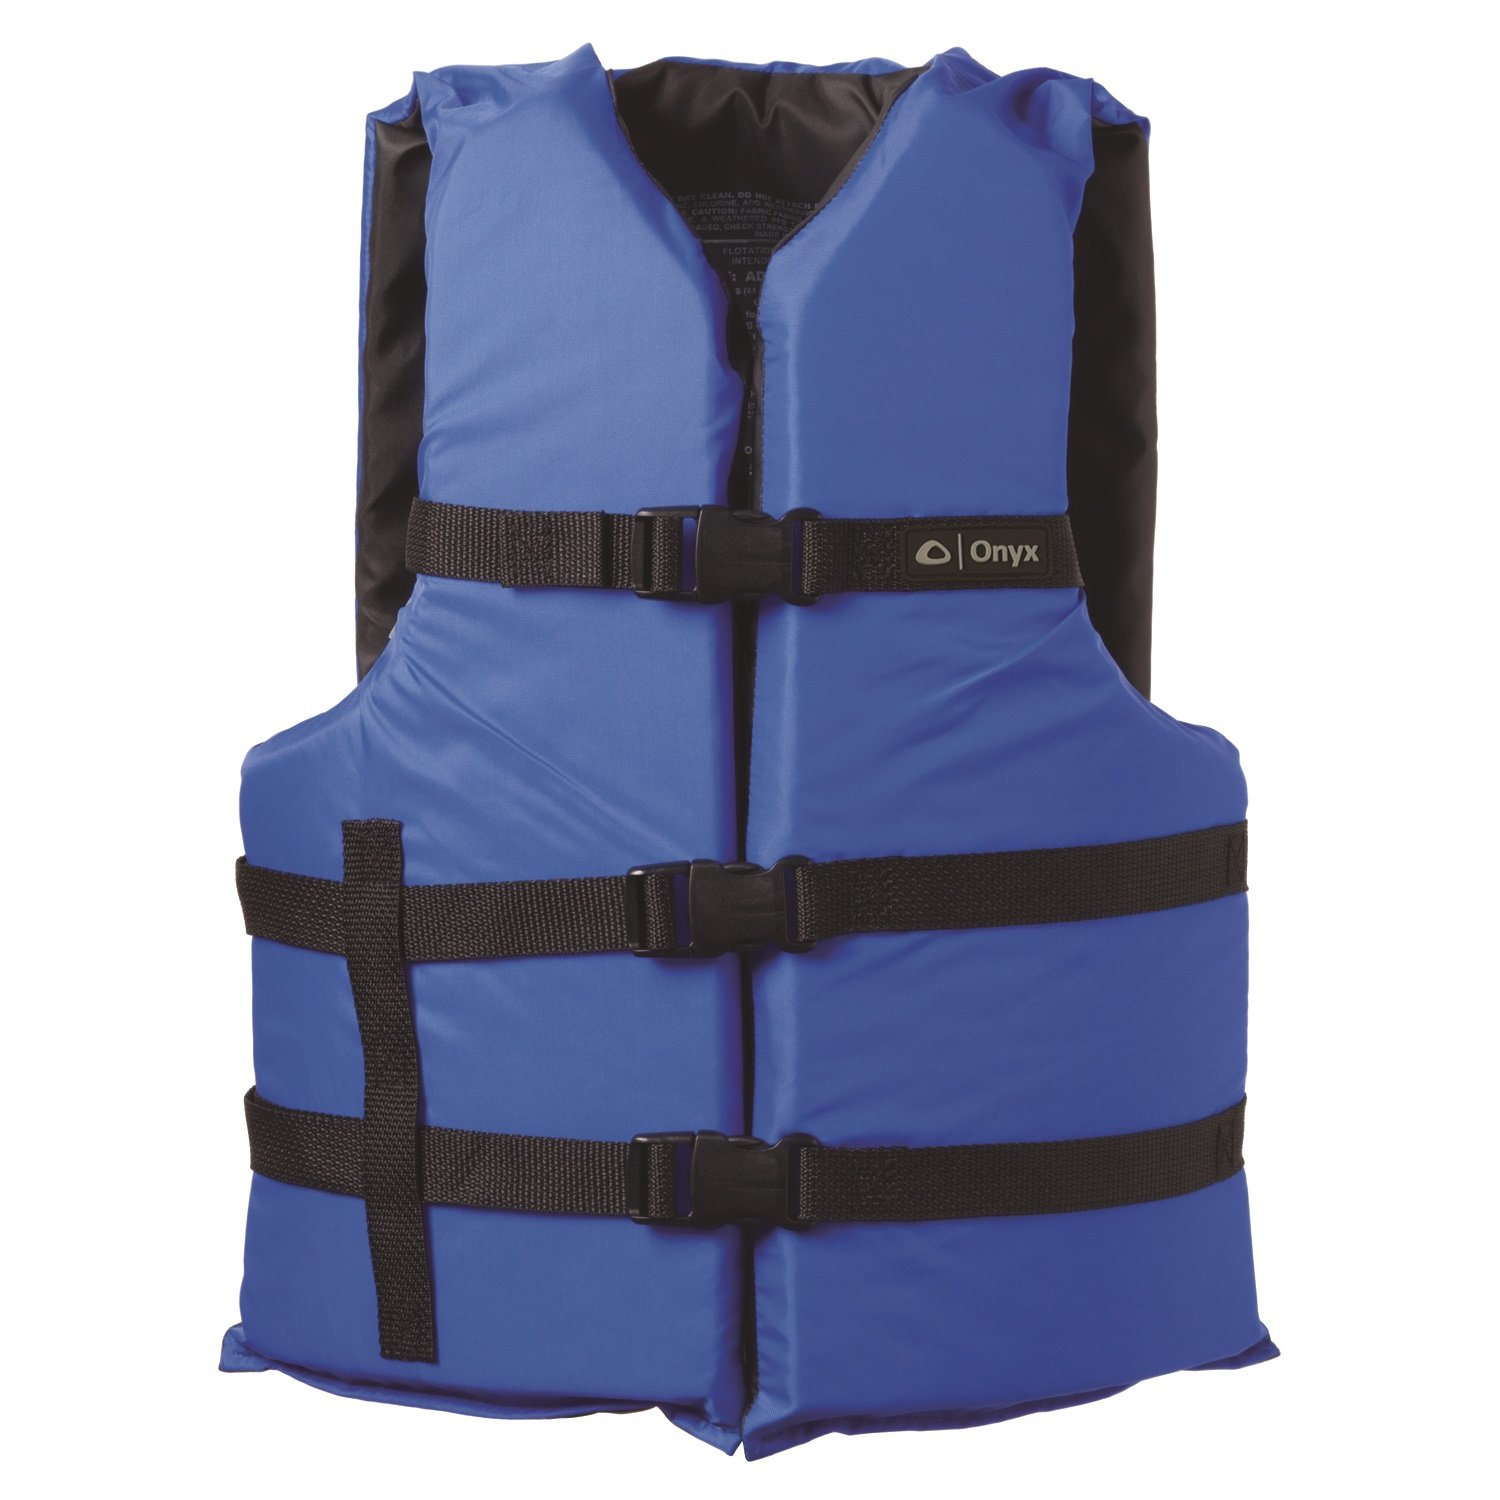 ONYX General Purpose Boating Life Jacket Universal, Blue by Absolute Outdoor